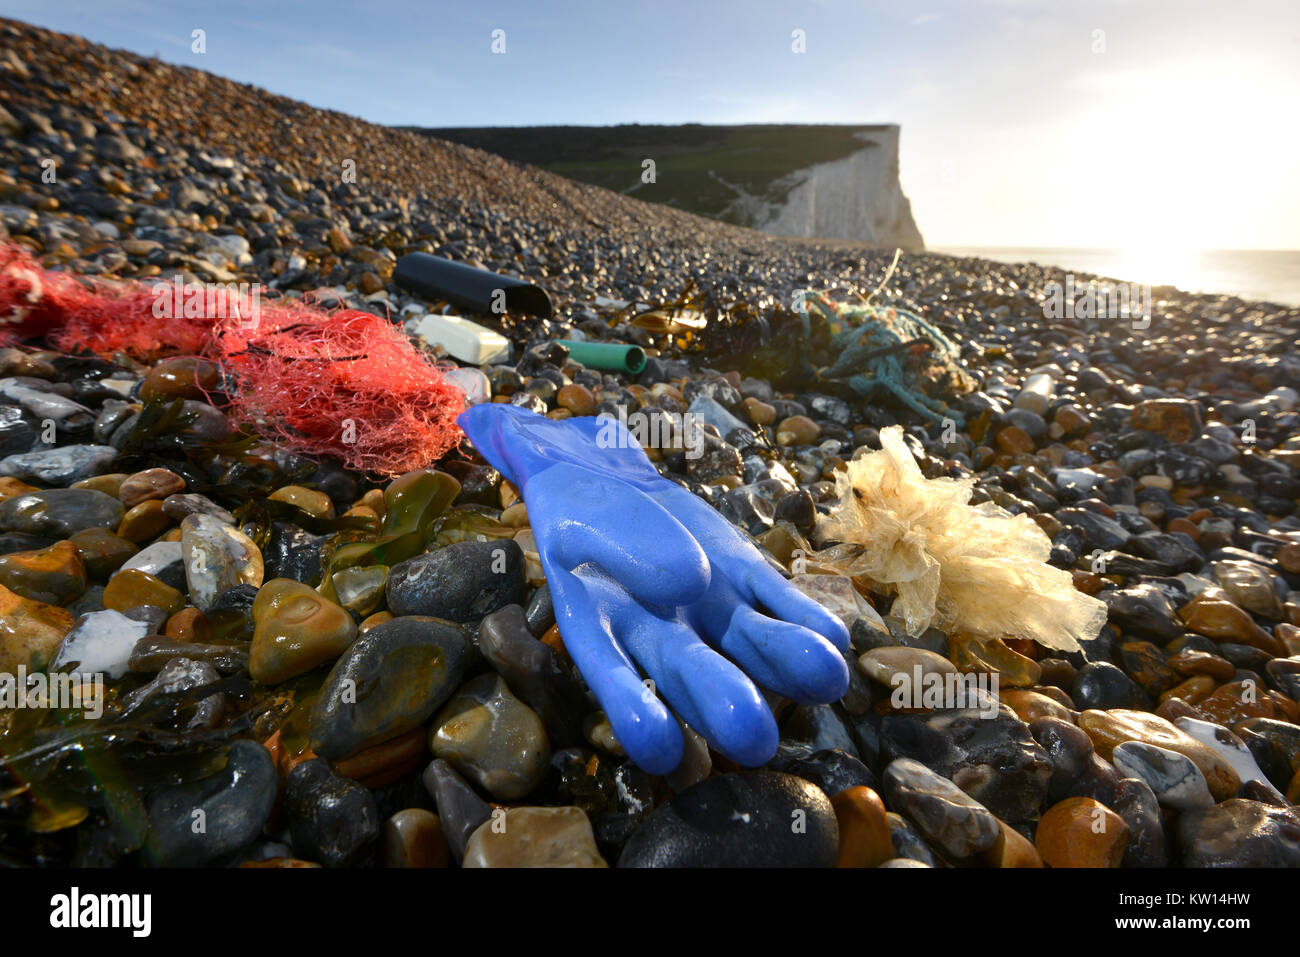 Plastic and rubbish washed up on a beach near the iconic Seven Sisters chalk cliffs in southern England, Cuckmere - Stock Image